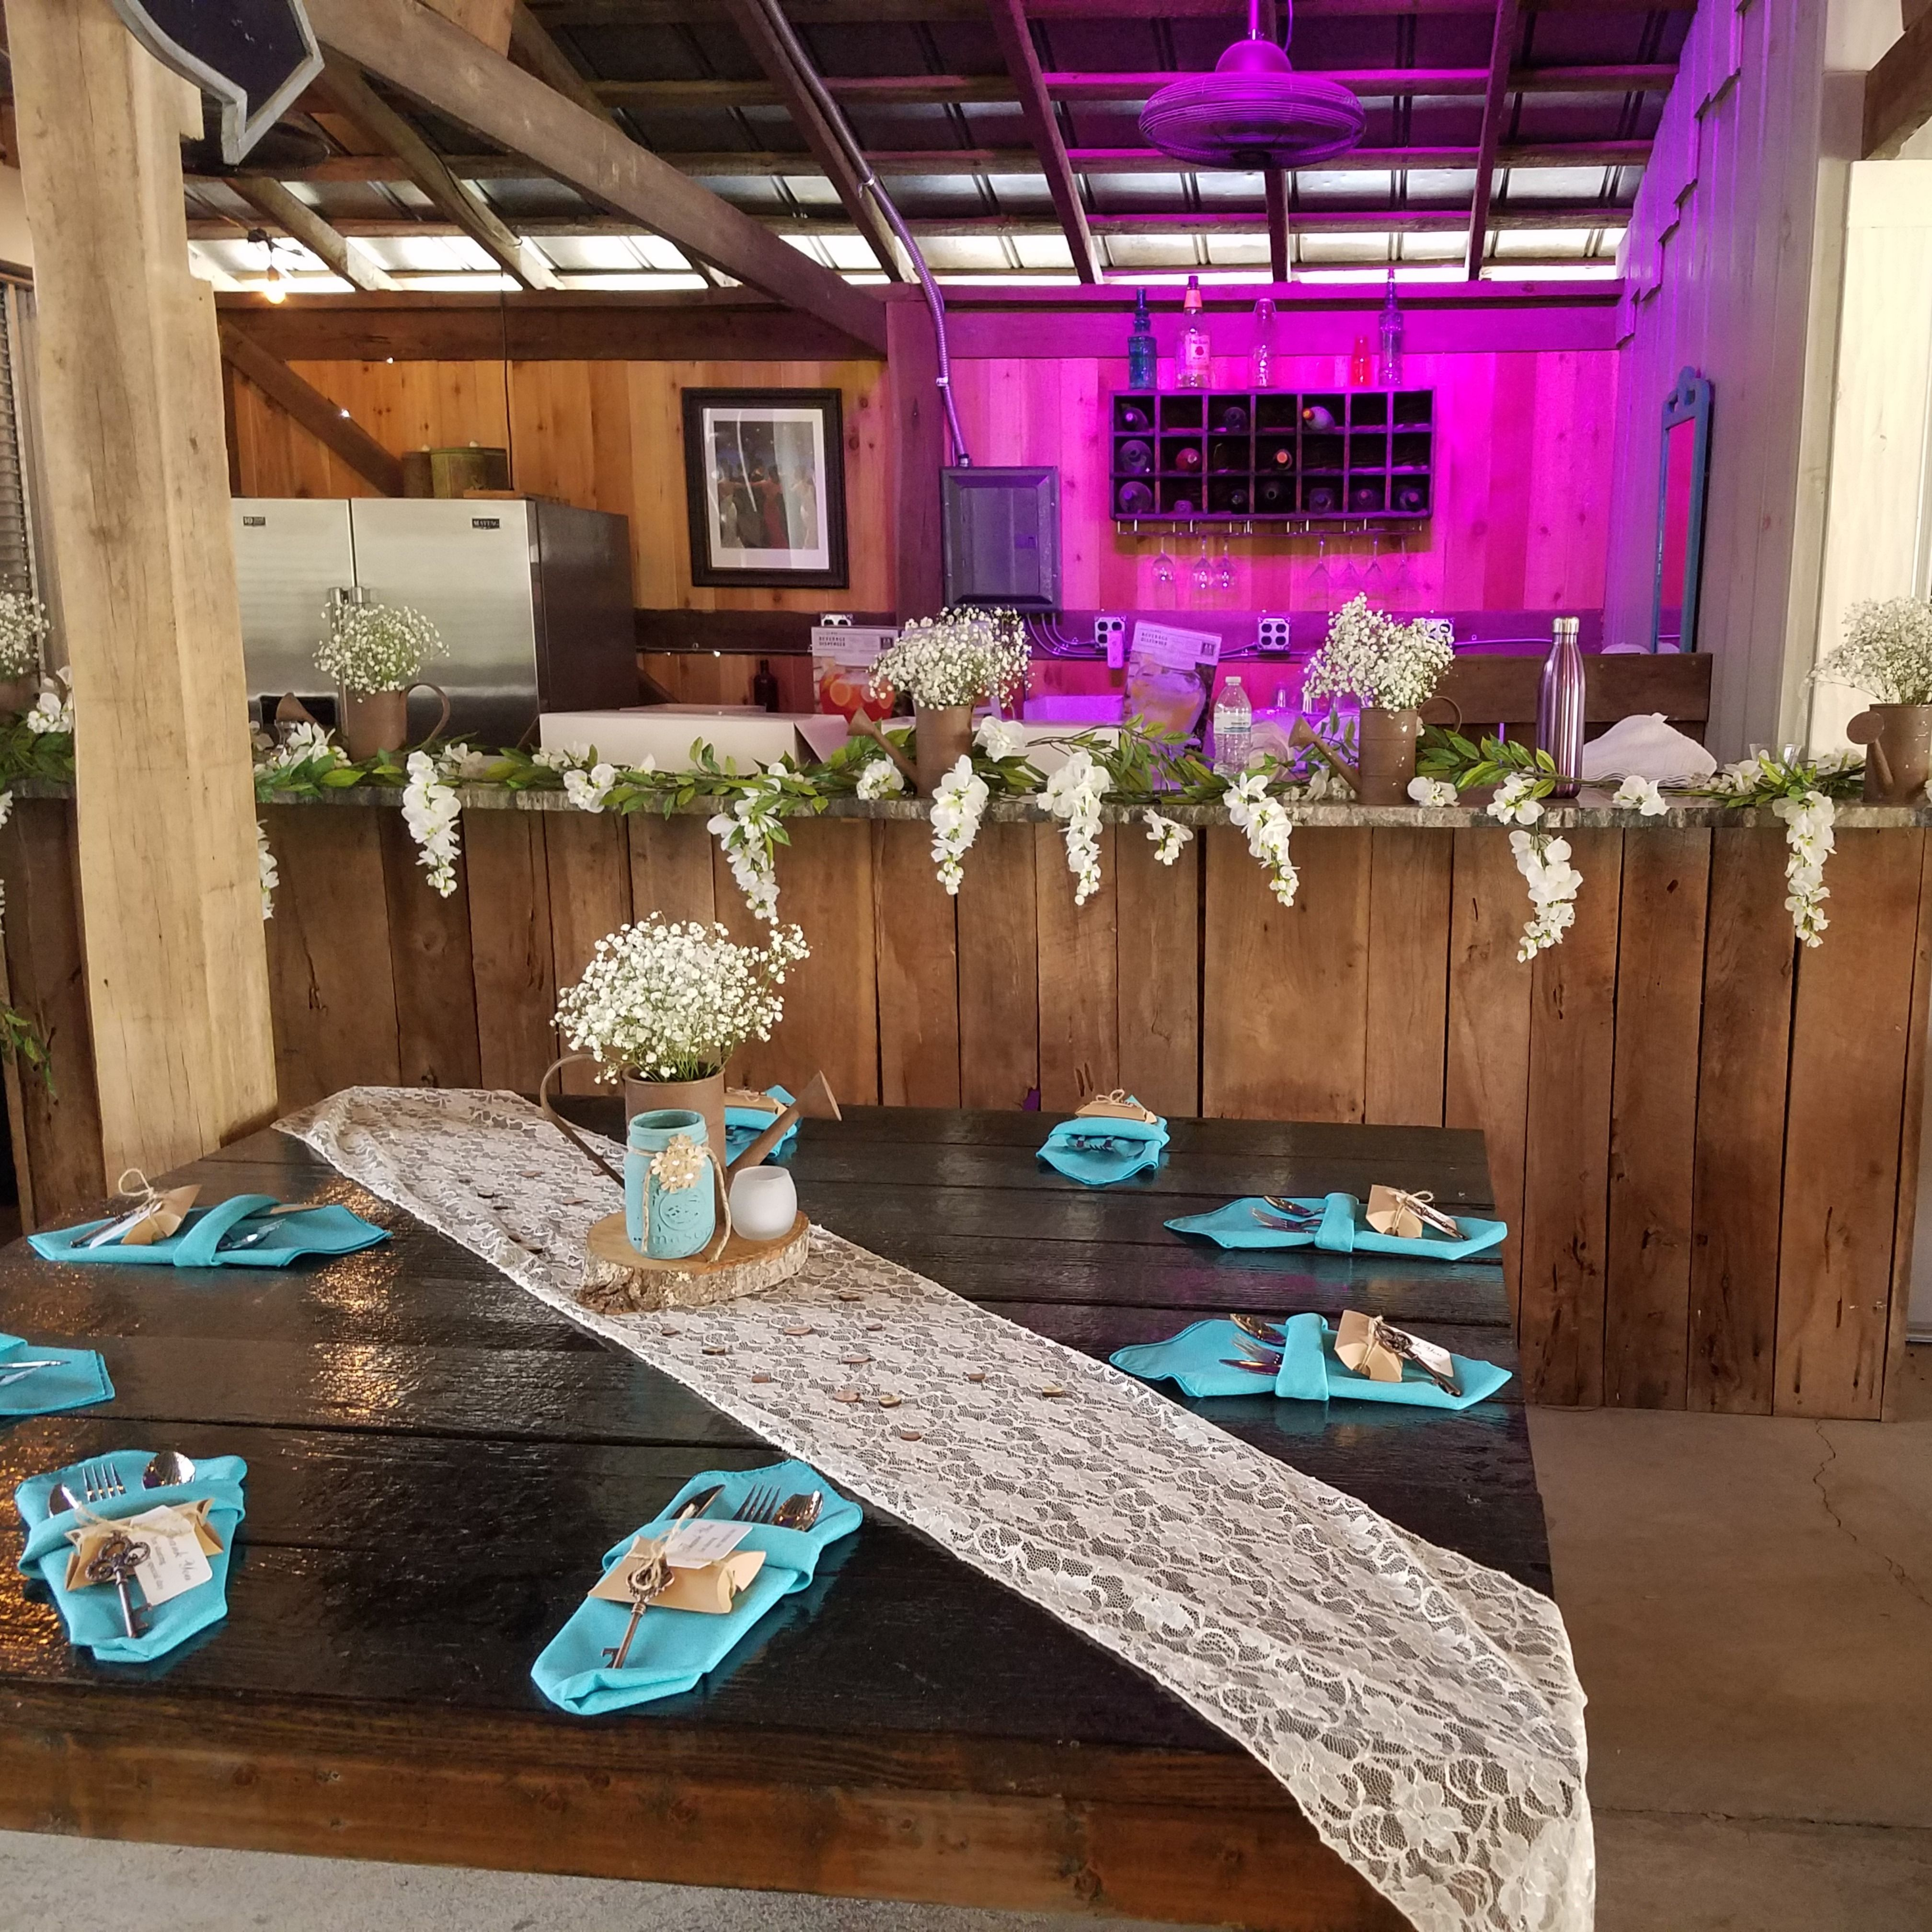 Rustic Wedding Decorations For Indoor And Outdoor Settings: Rustic Wood Table With A Lace Runner, Wood Slice, Rustic